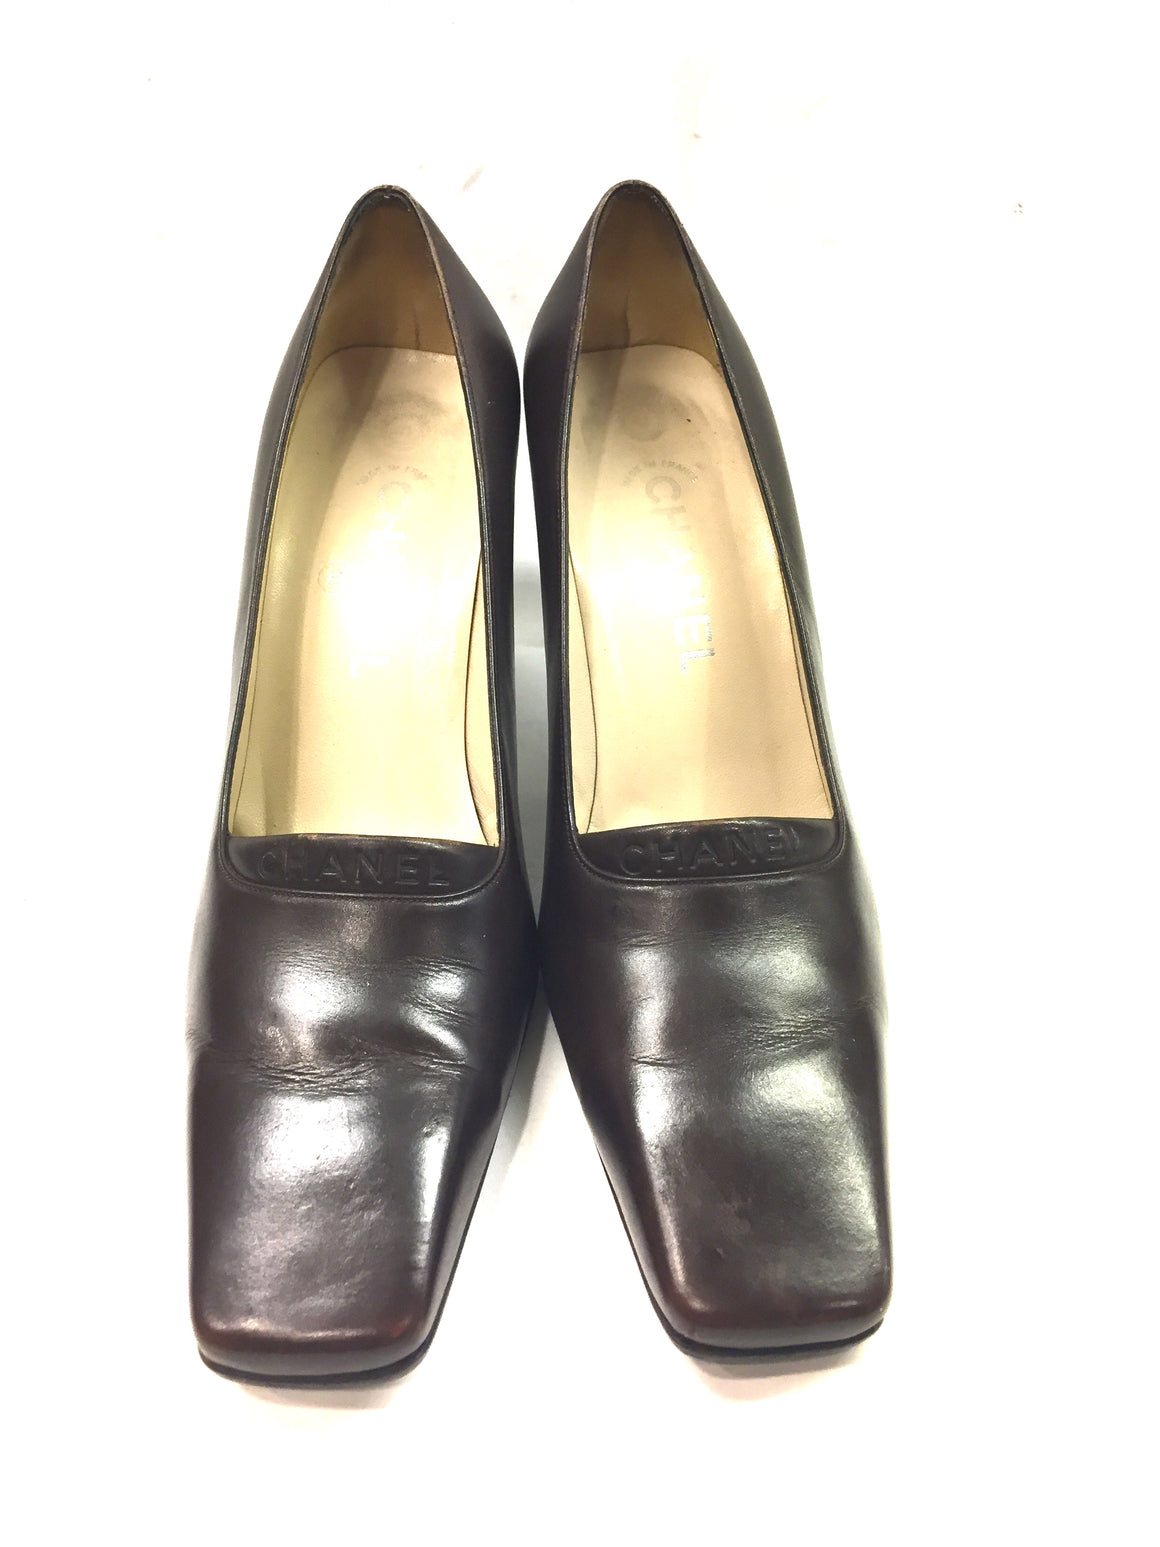 CHANEL Brown Leather Molded Acrylic Logo Heels Pumps Shoes Sz39